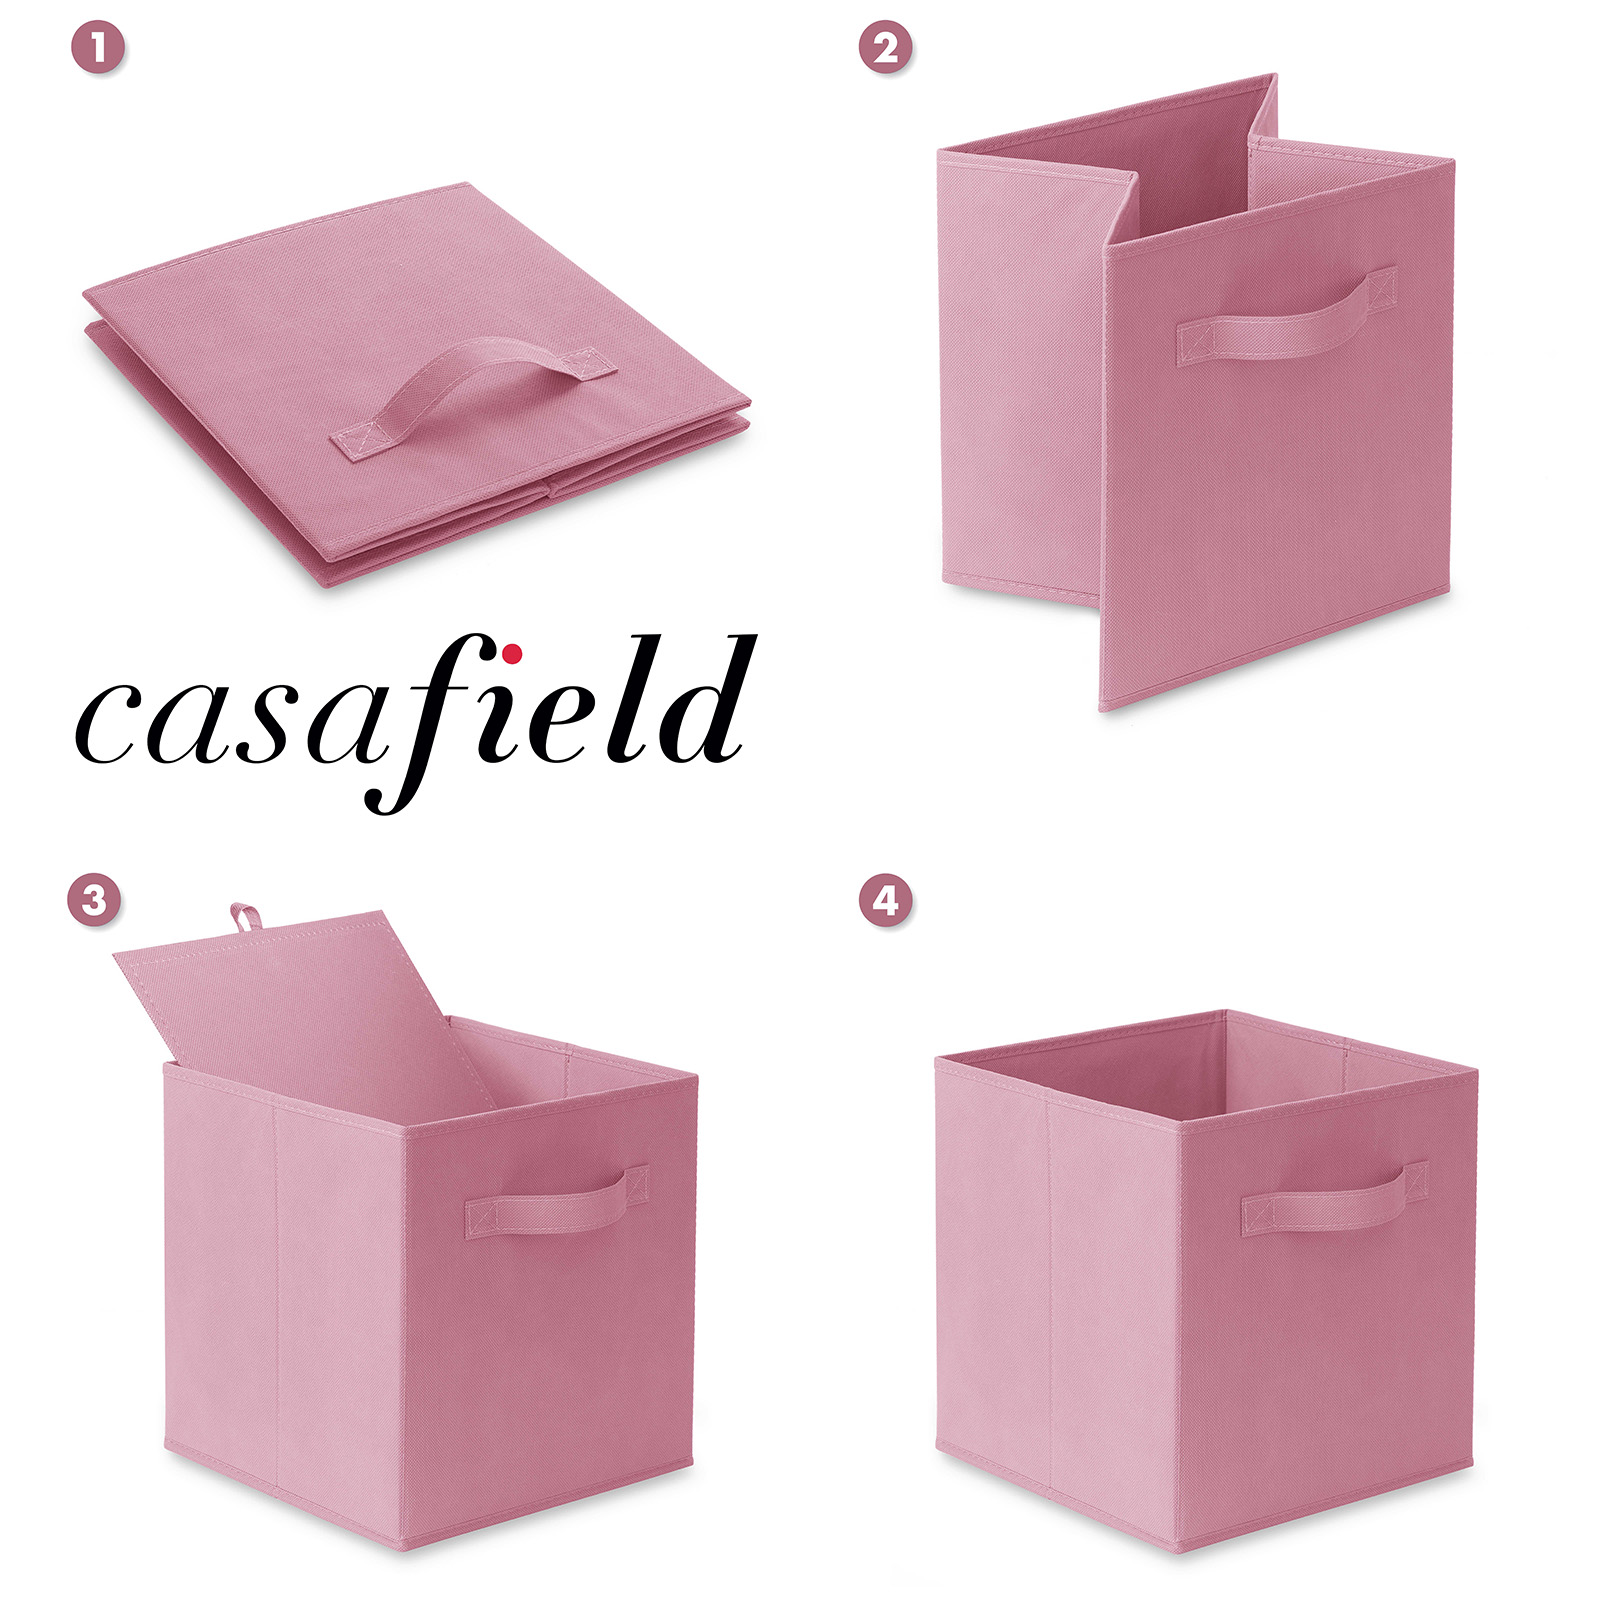 6-Collapsible-Foldable-Cloth-Fabric-Cubby-Cube-Storage-Bins-Baskets-for-Shelves thumbnail 40